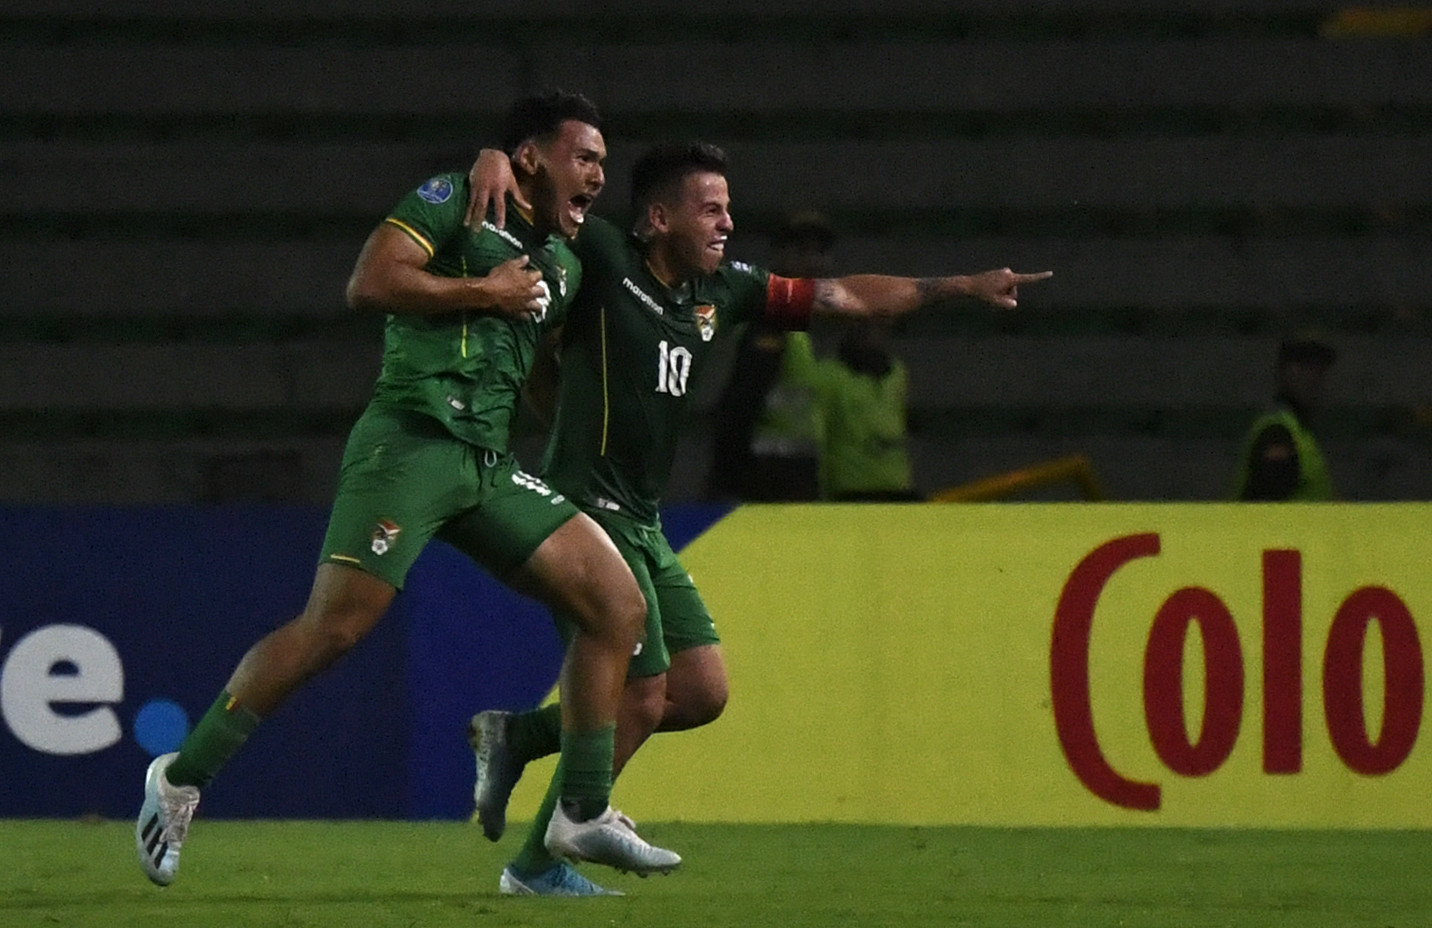 Bolivia striker Fernando Saldías celebrates scoring the last-gasp winner in in team's 3-2 win over Uruguay ©Getty Images